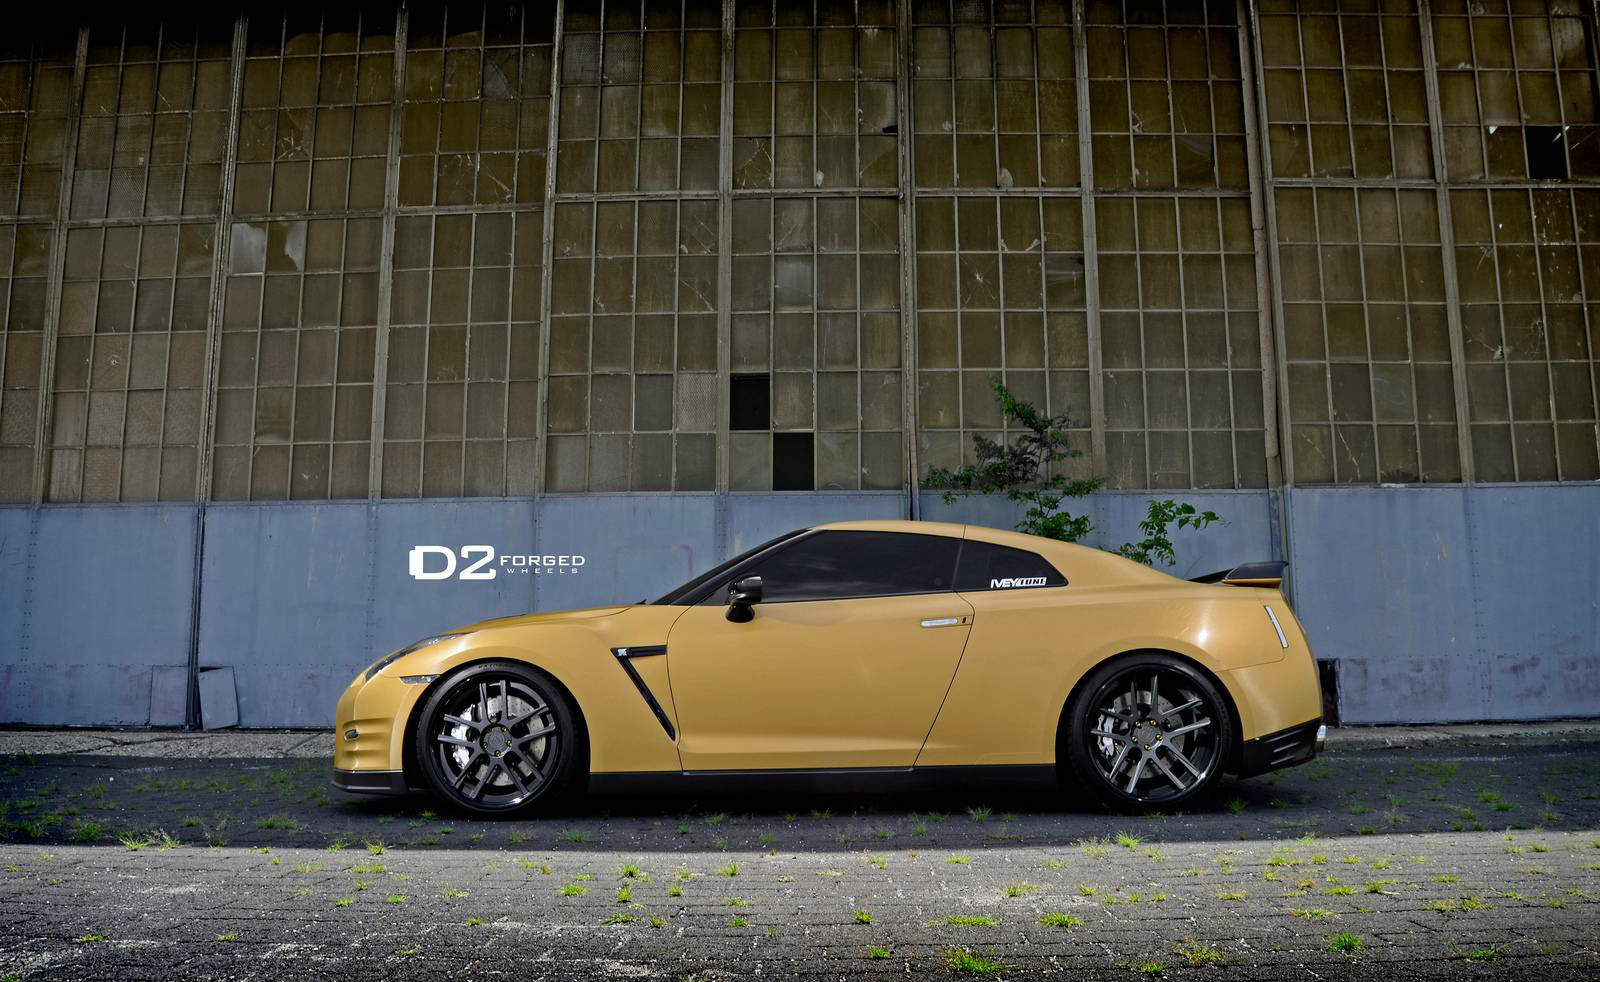 Japanese Car Brands >> Matte Gold Nissan-GTR-D2FORGED-CV8-Wheels-left side view - NO Car NO Fun! Muscle Cars and Power ...